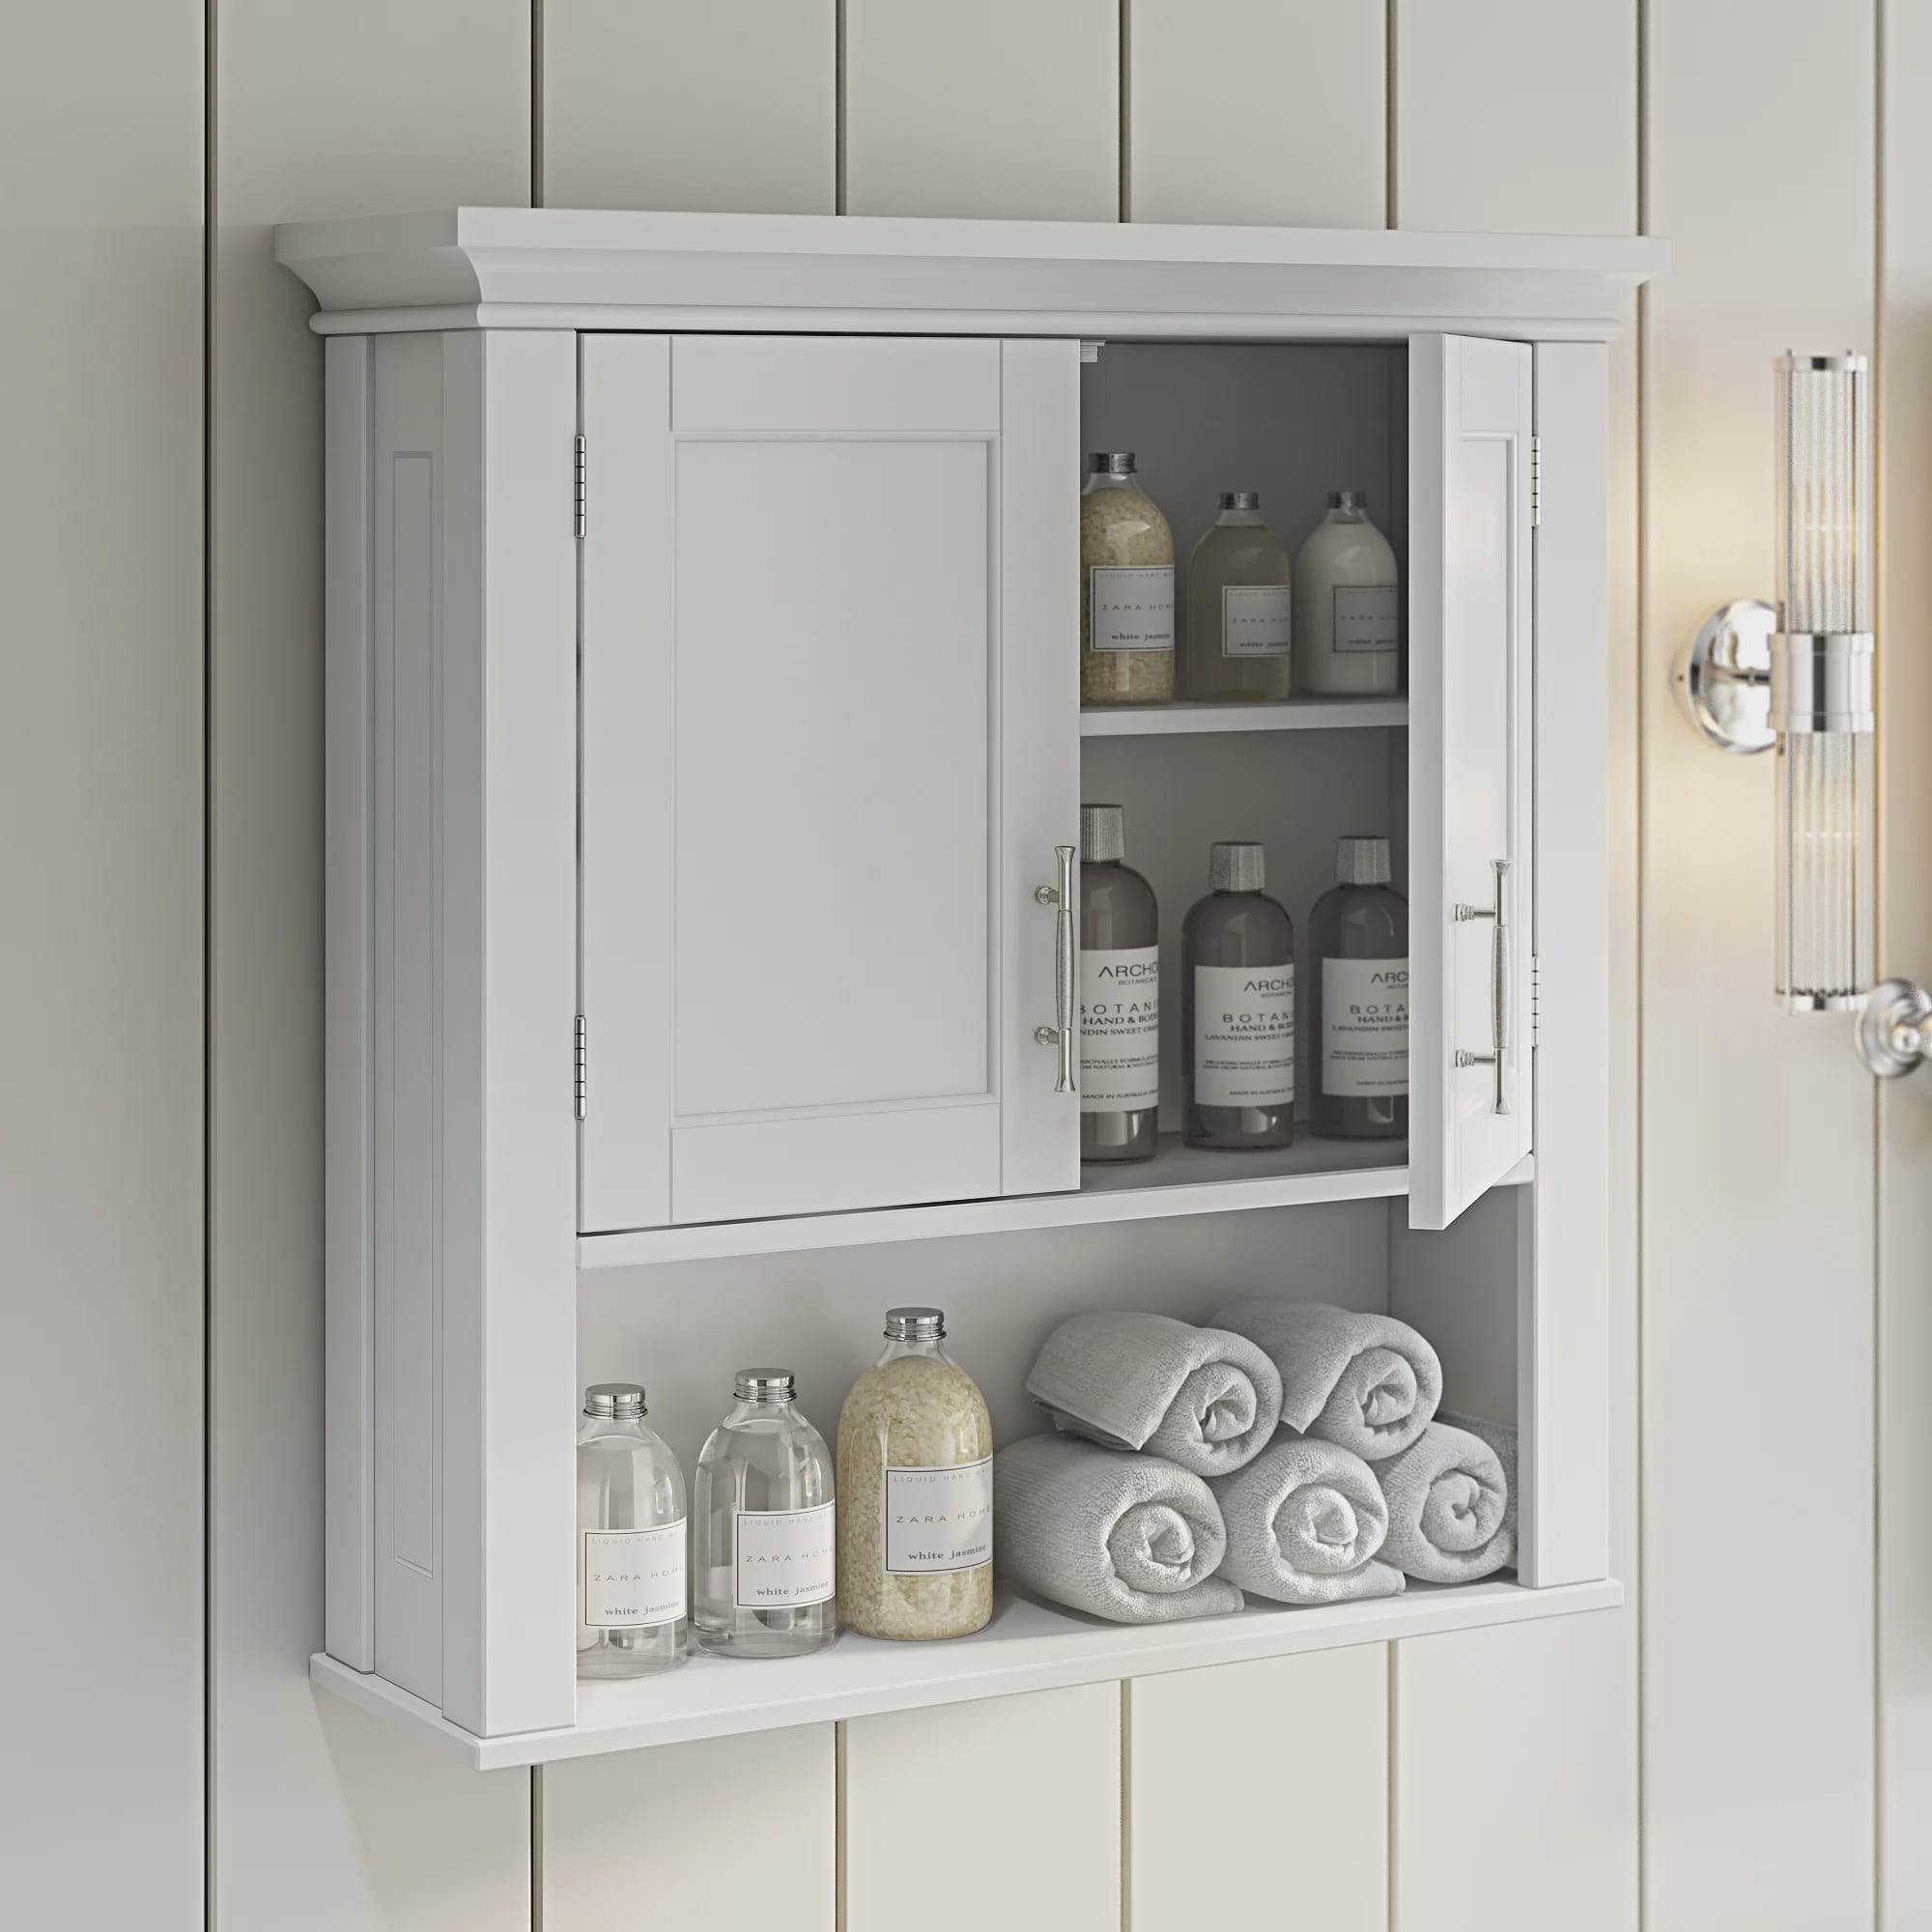 Know More About Bathroom Cabinet Tips